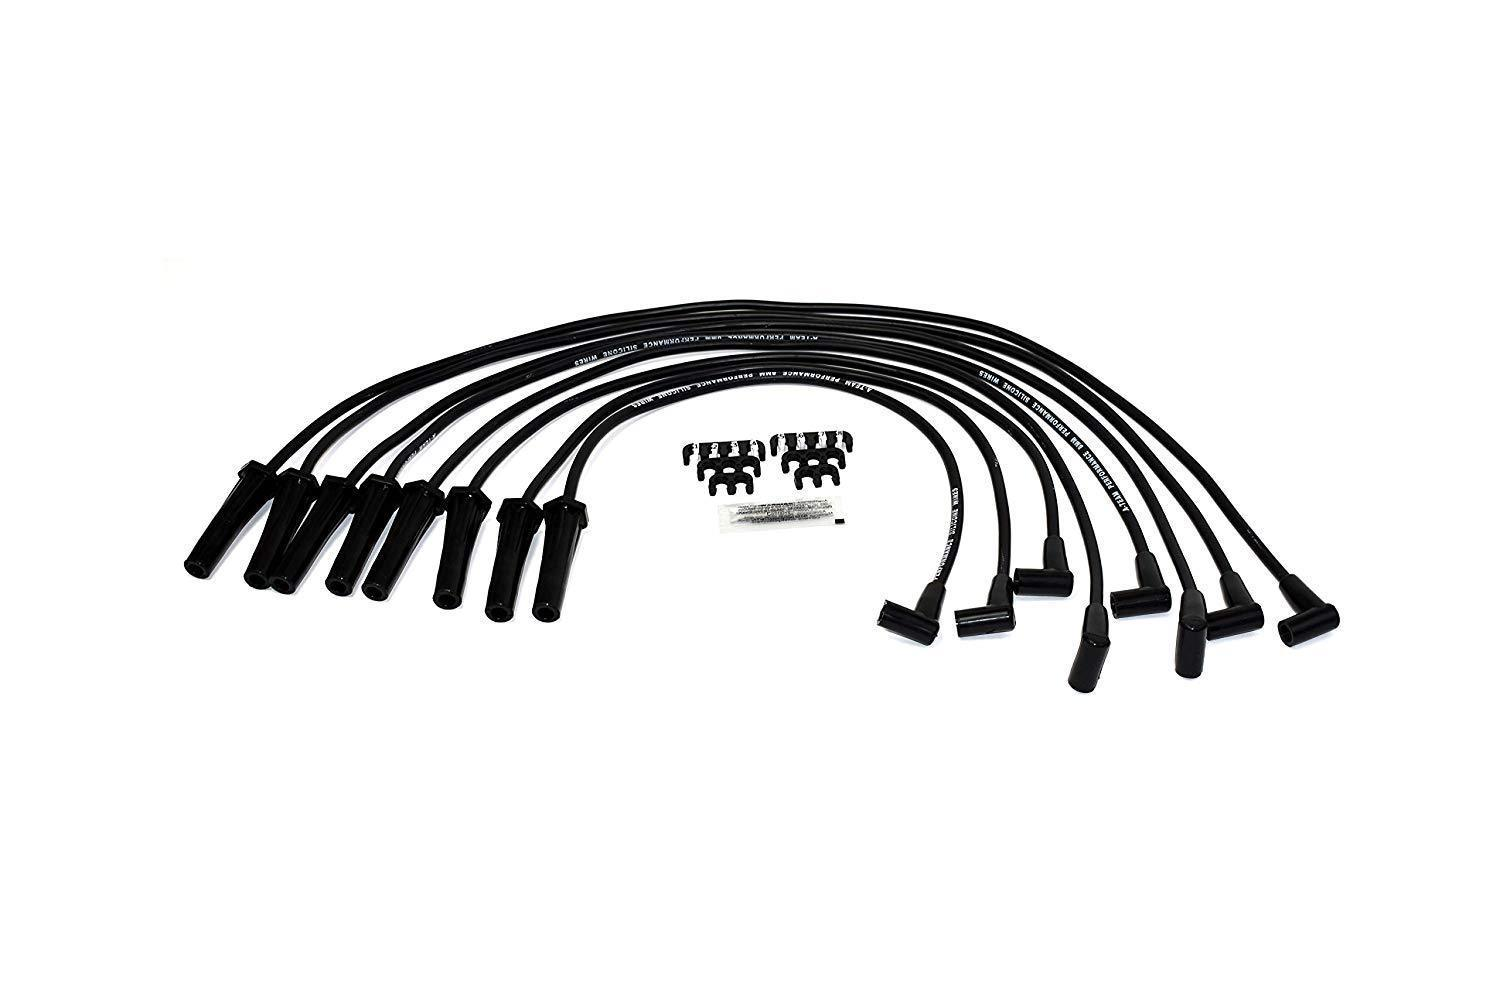 8.0mm Black Silicone Spark Plug Wires For BBC Big Block Chevy Chevrolet GMC